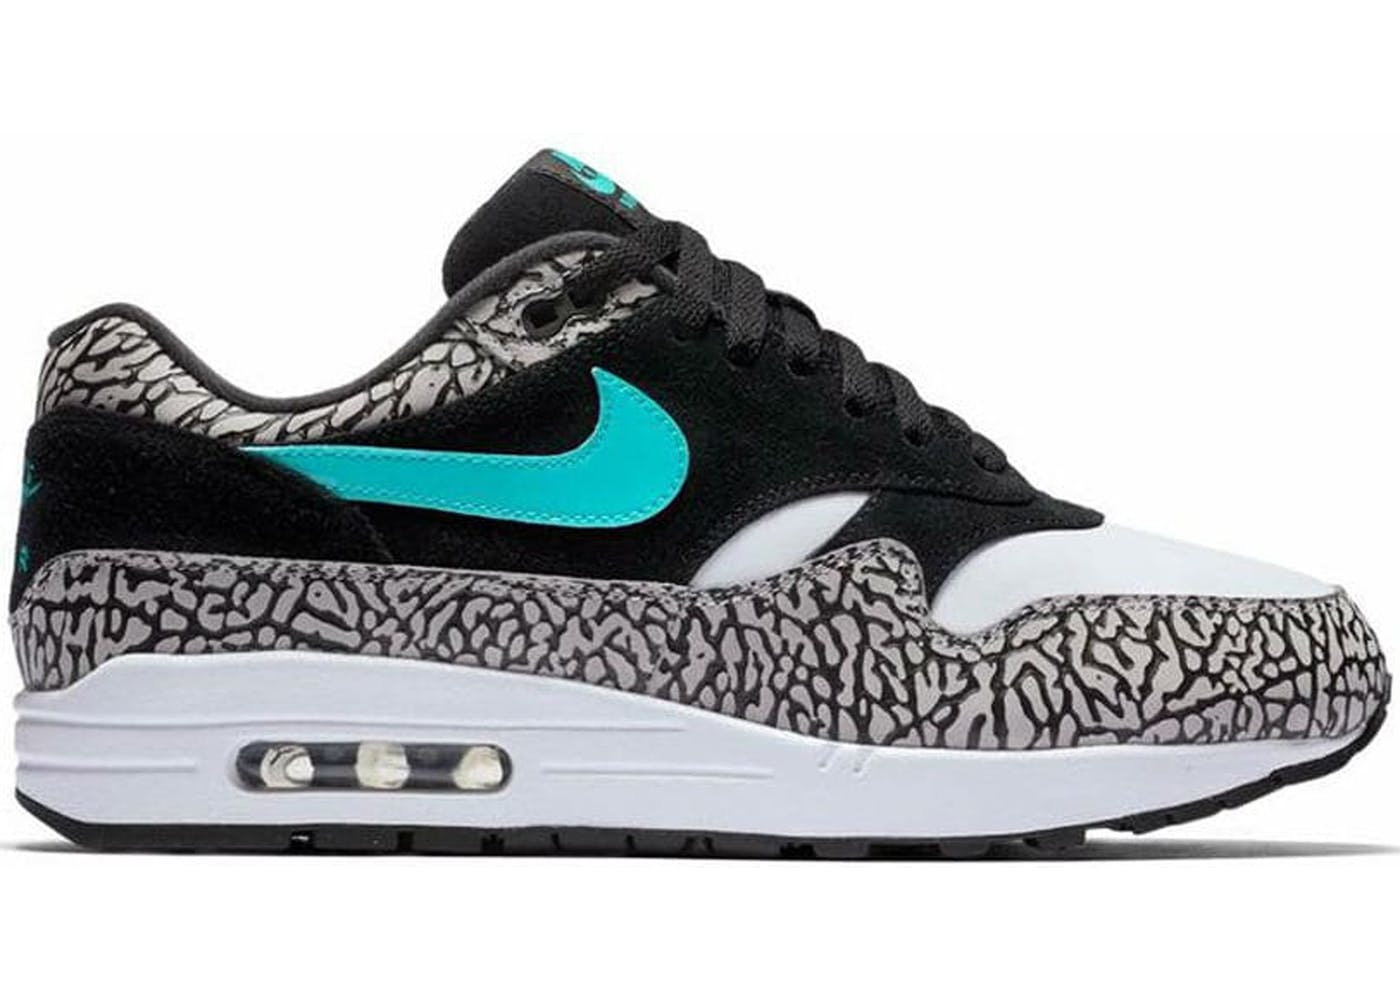 air max 1 atmos elephant 2017. Black Bedroom Furniture Sets. Home Design Ideas